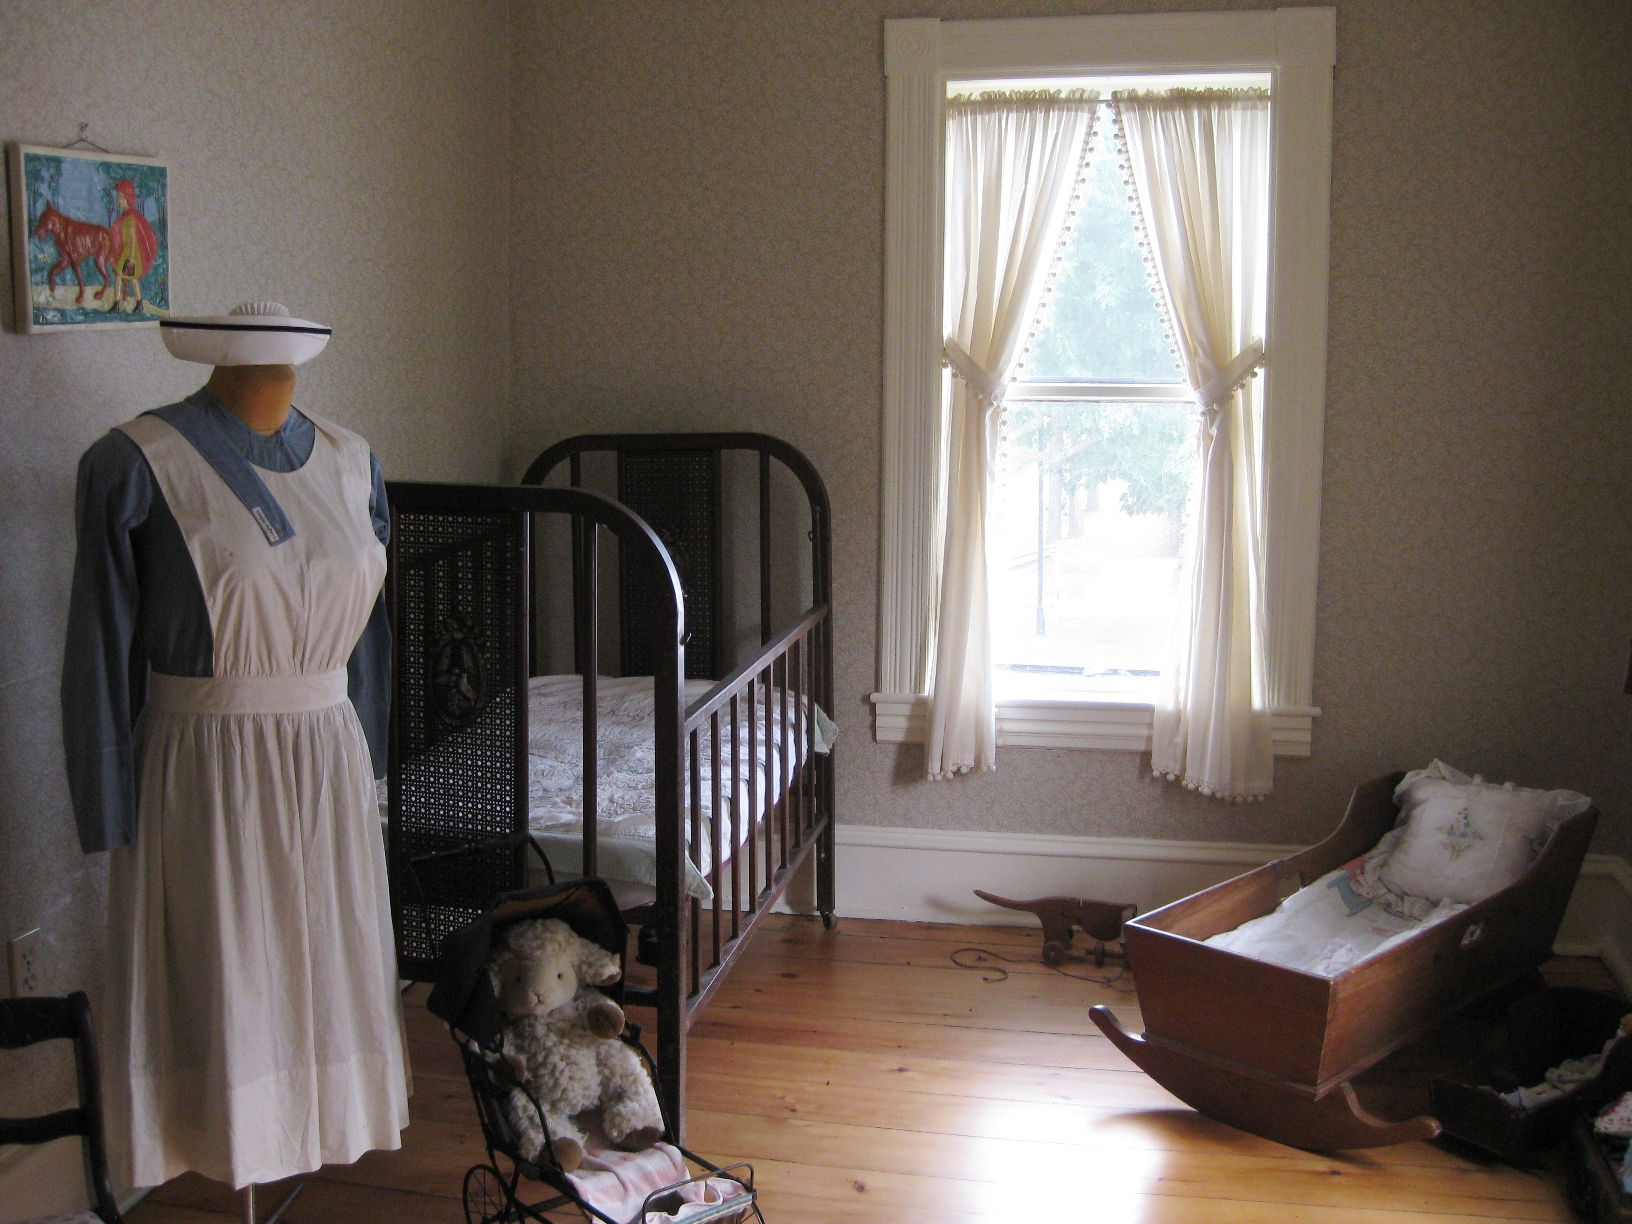 Bedroom on historical society home